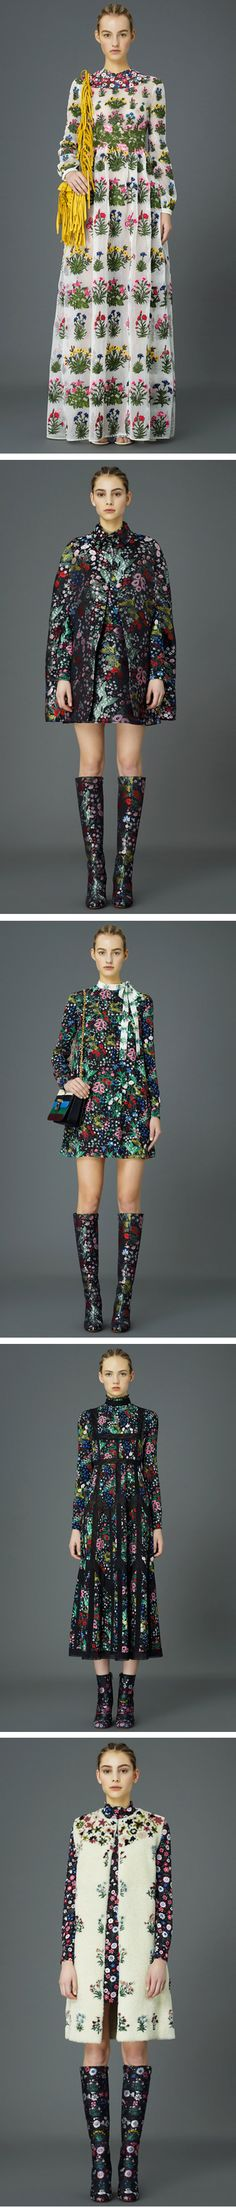 Valentino Pre Fall 2015 via http://www.style.com/slideshows/fashion-shows/pre-fall-2015/valentino/collection/30